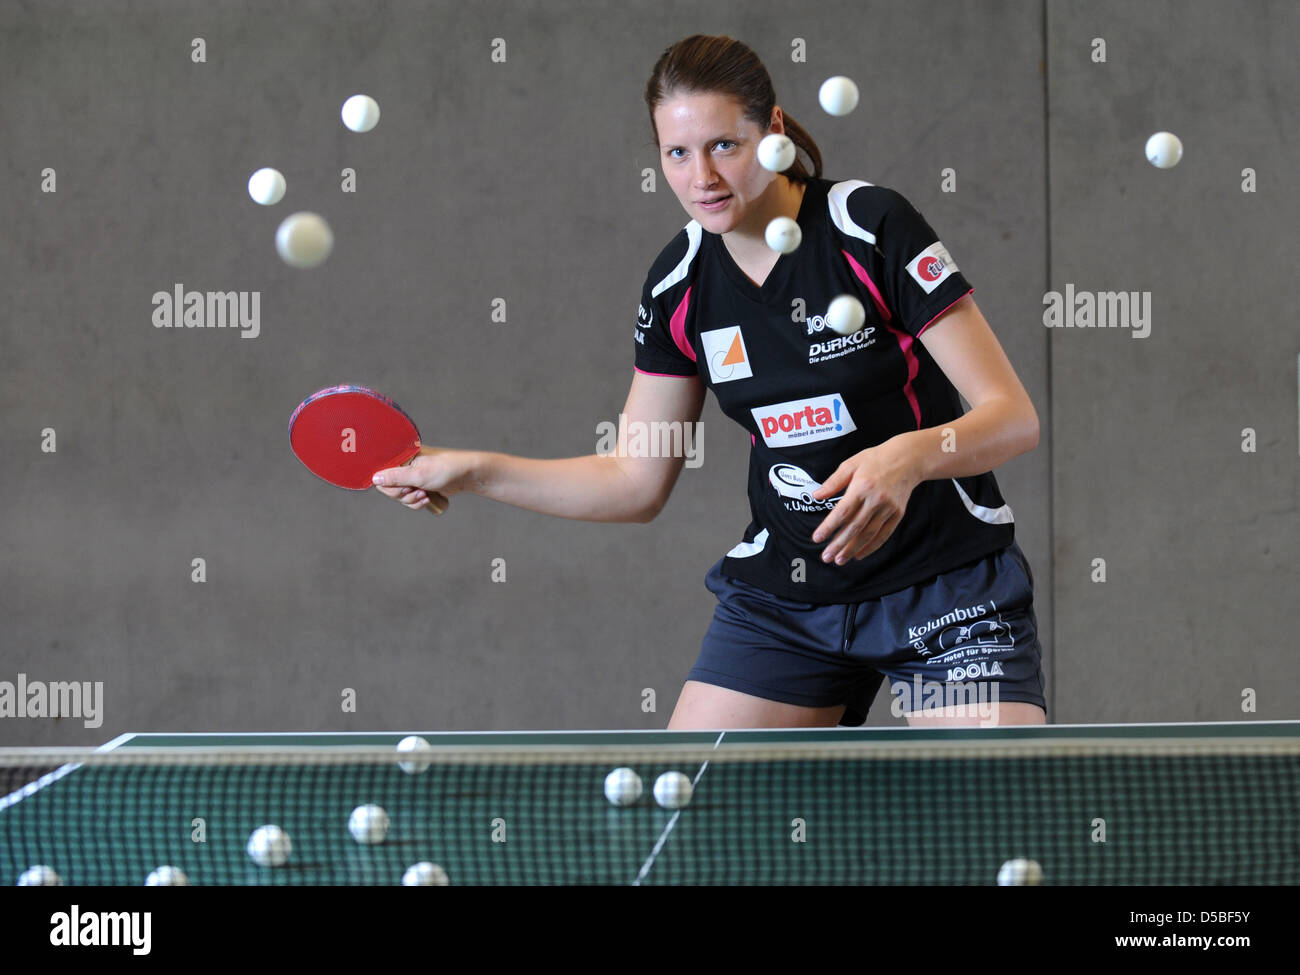 Berlin, Allemagne, joueur de tennis de table Ivancan Irene Photo Stock